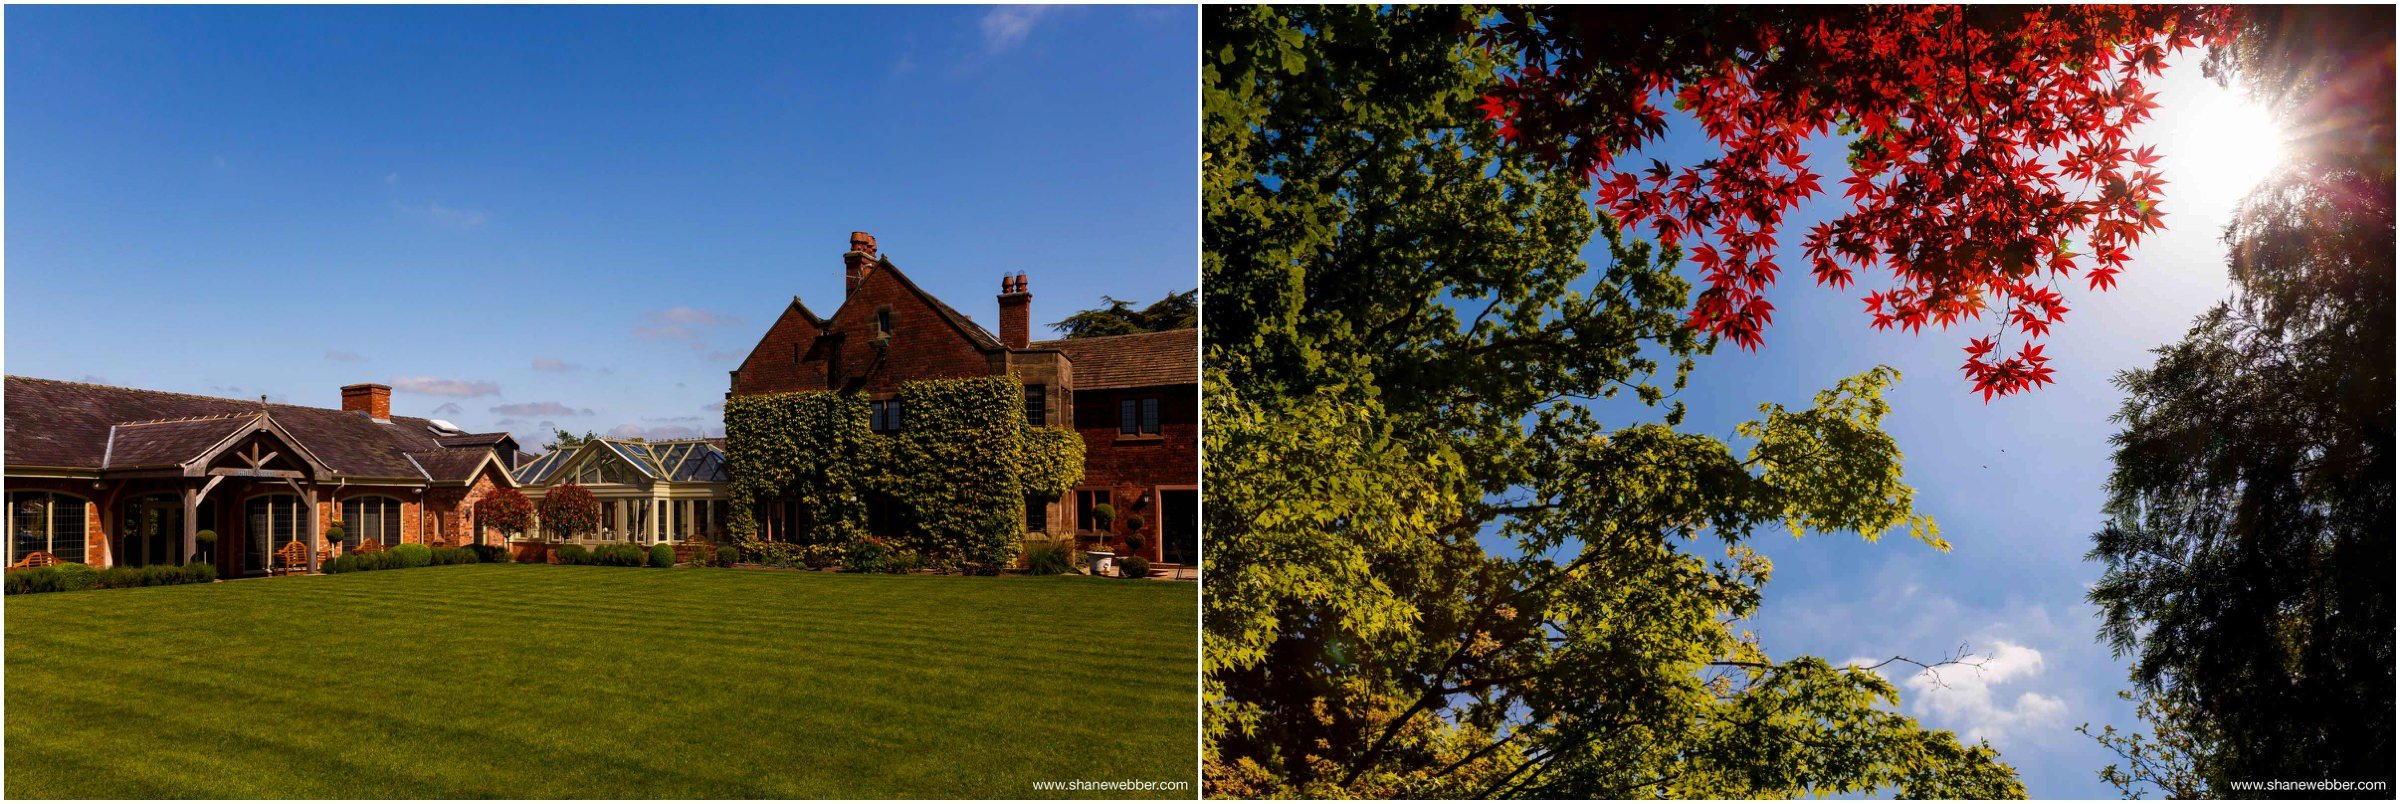 Colshaw Hall Cheshire Wedding Venue